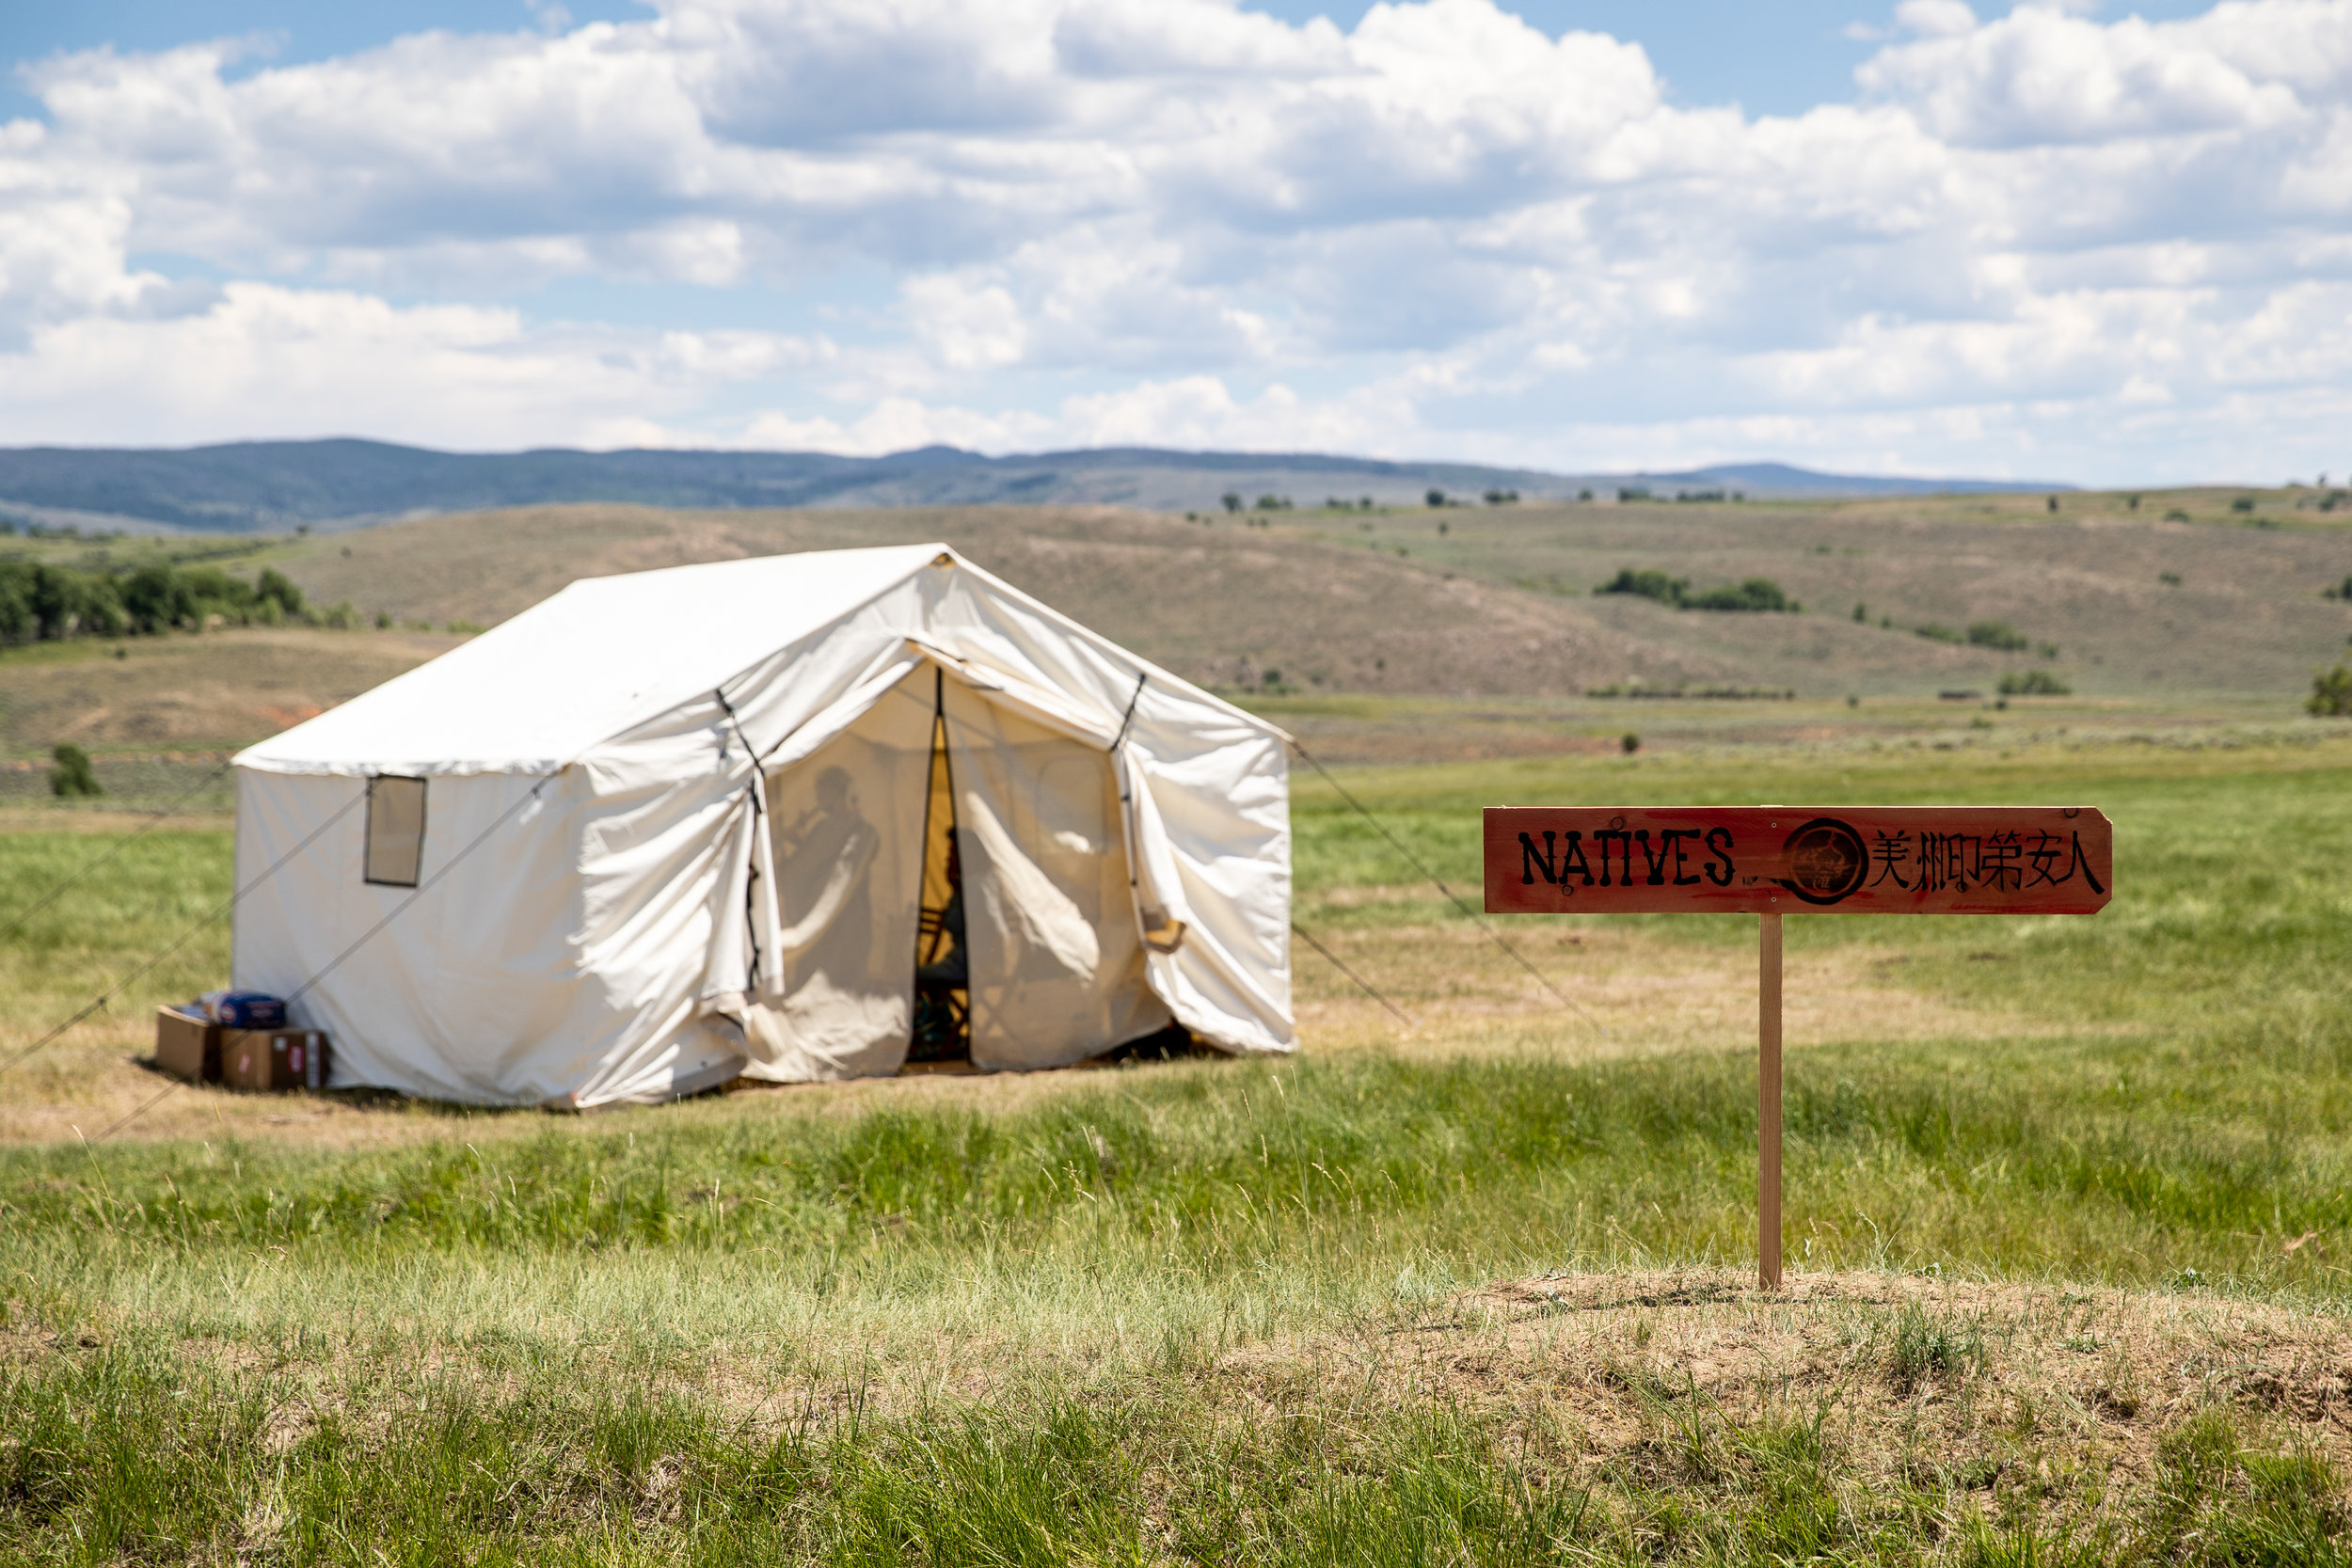 Native American Experience tent